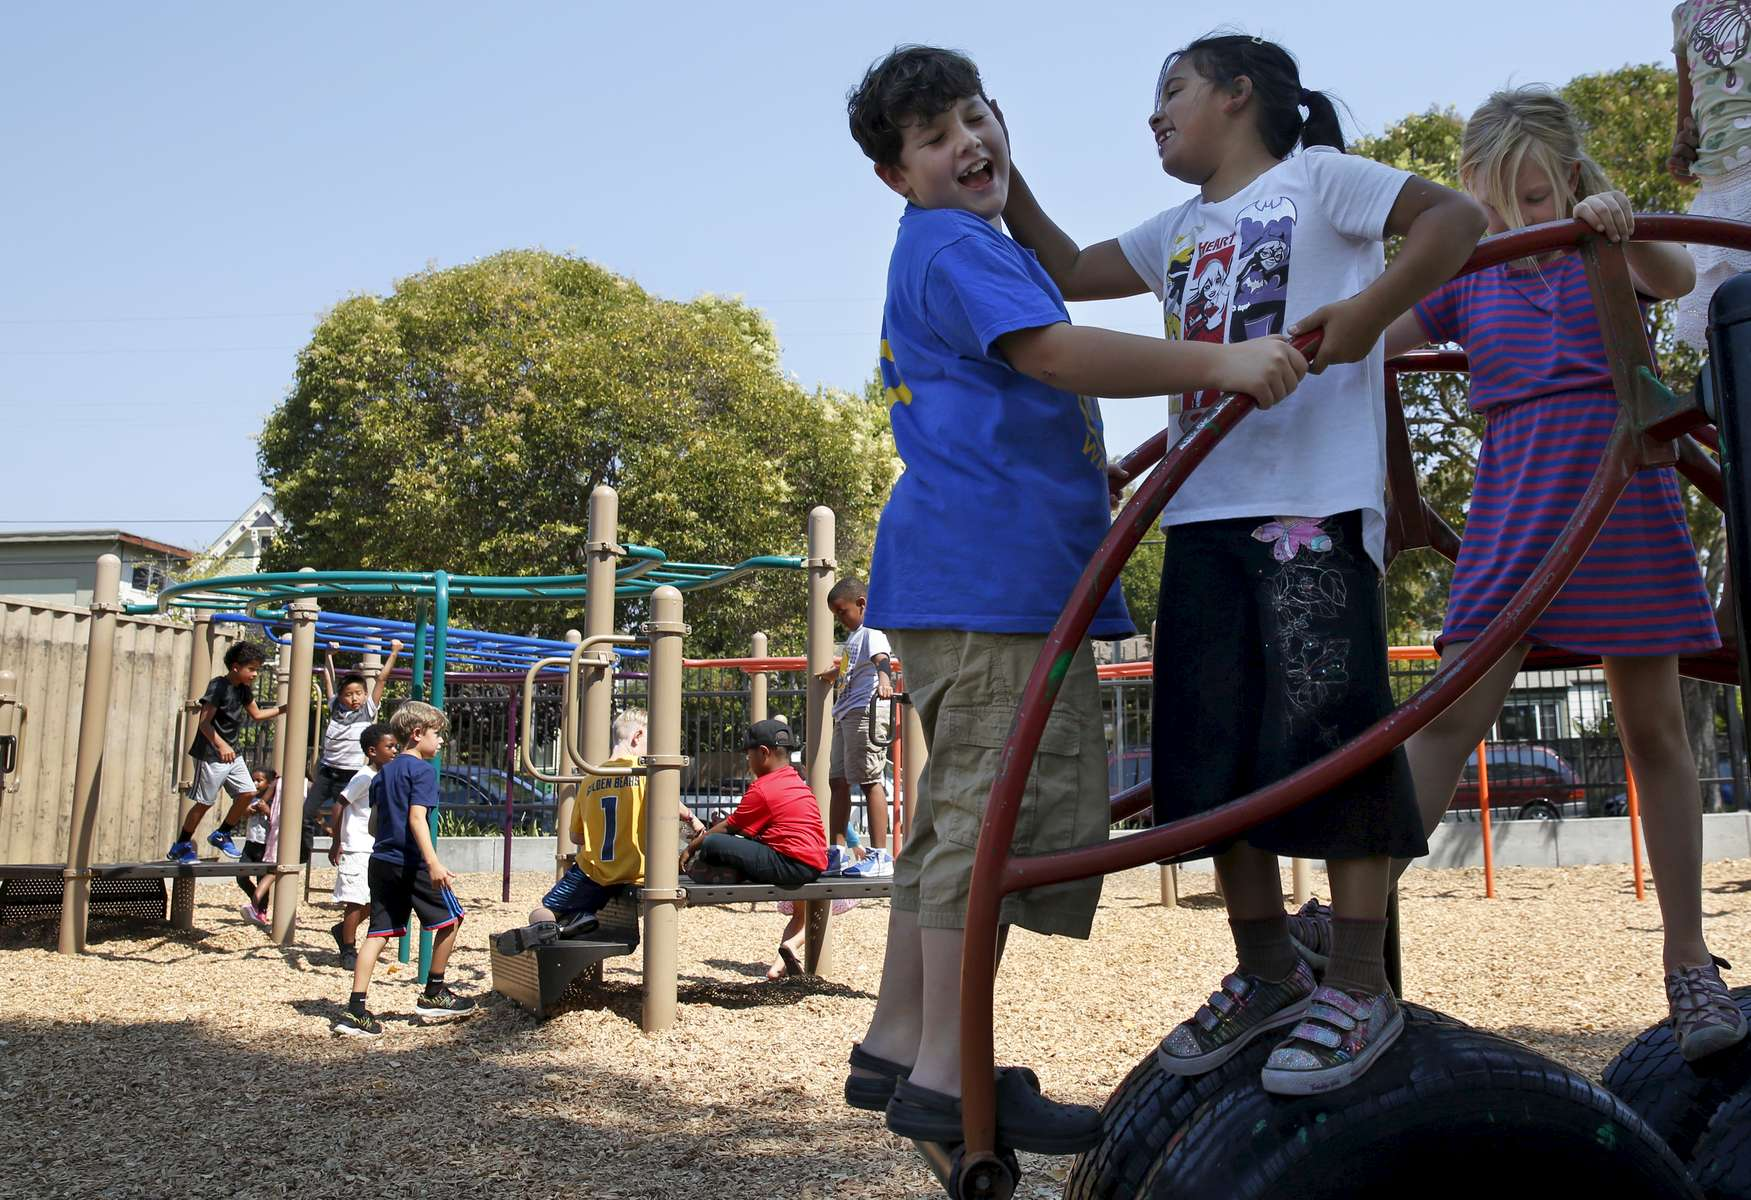 James Kaplan, 8, plays with friends, from left, Rose Herbert, 8, and Serene Kimball, 8 on the playground after school Sept. 7, 2016 in Berkeley, Calif. Rose was the first person James came out to about being a transgender boy.